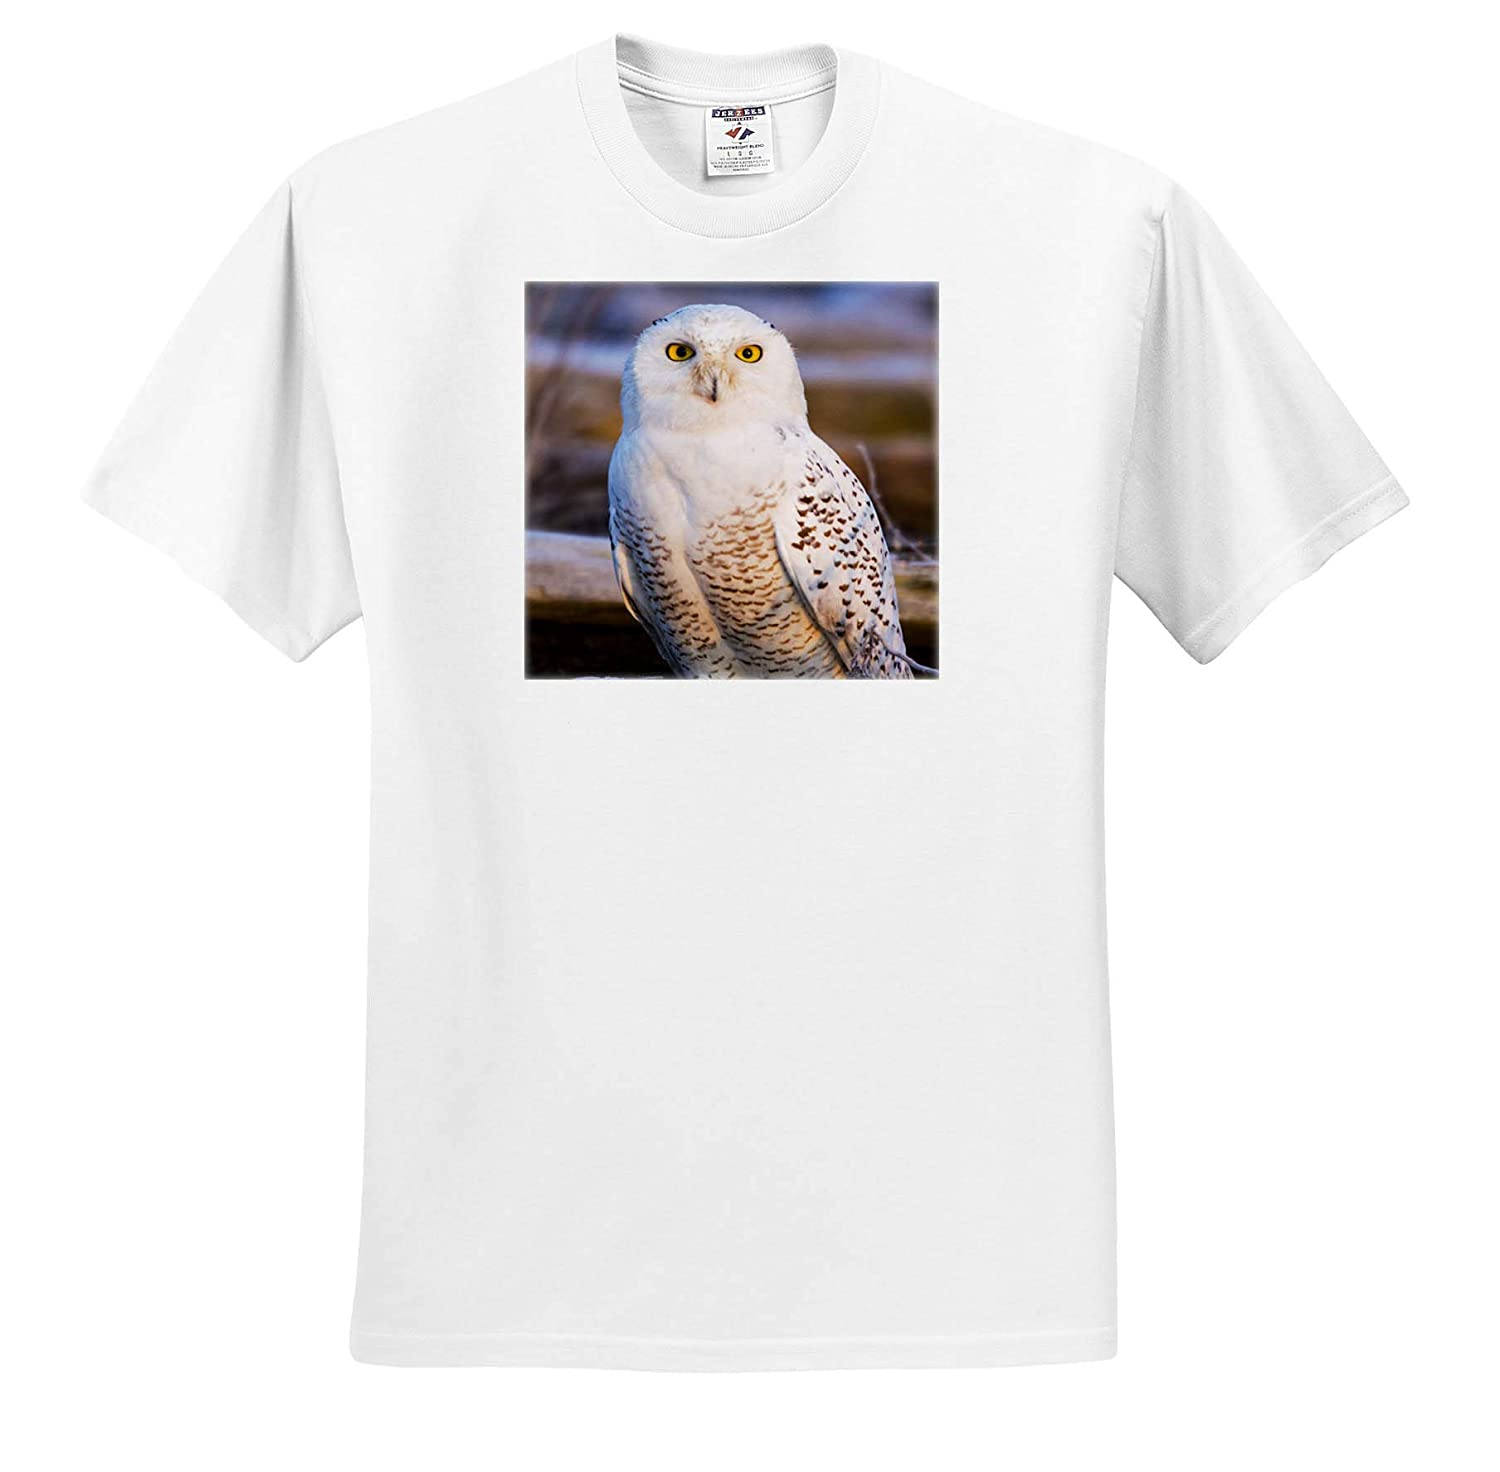 Owls Adult T-Shirt XL Canada Snowy Owl Waiting for Prey British Columbia 3dRose Danita Delimont ts/_313033